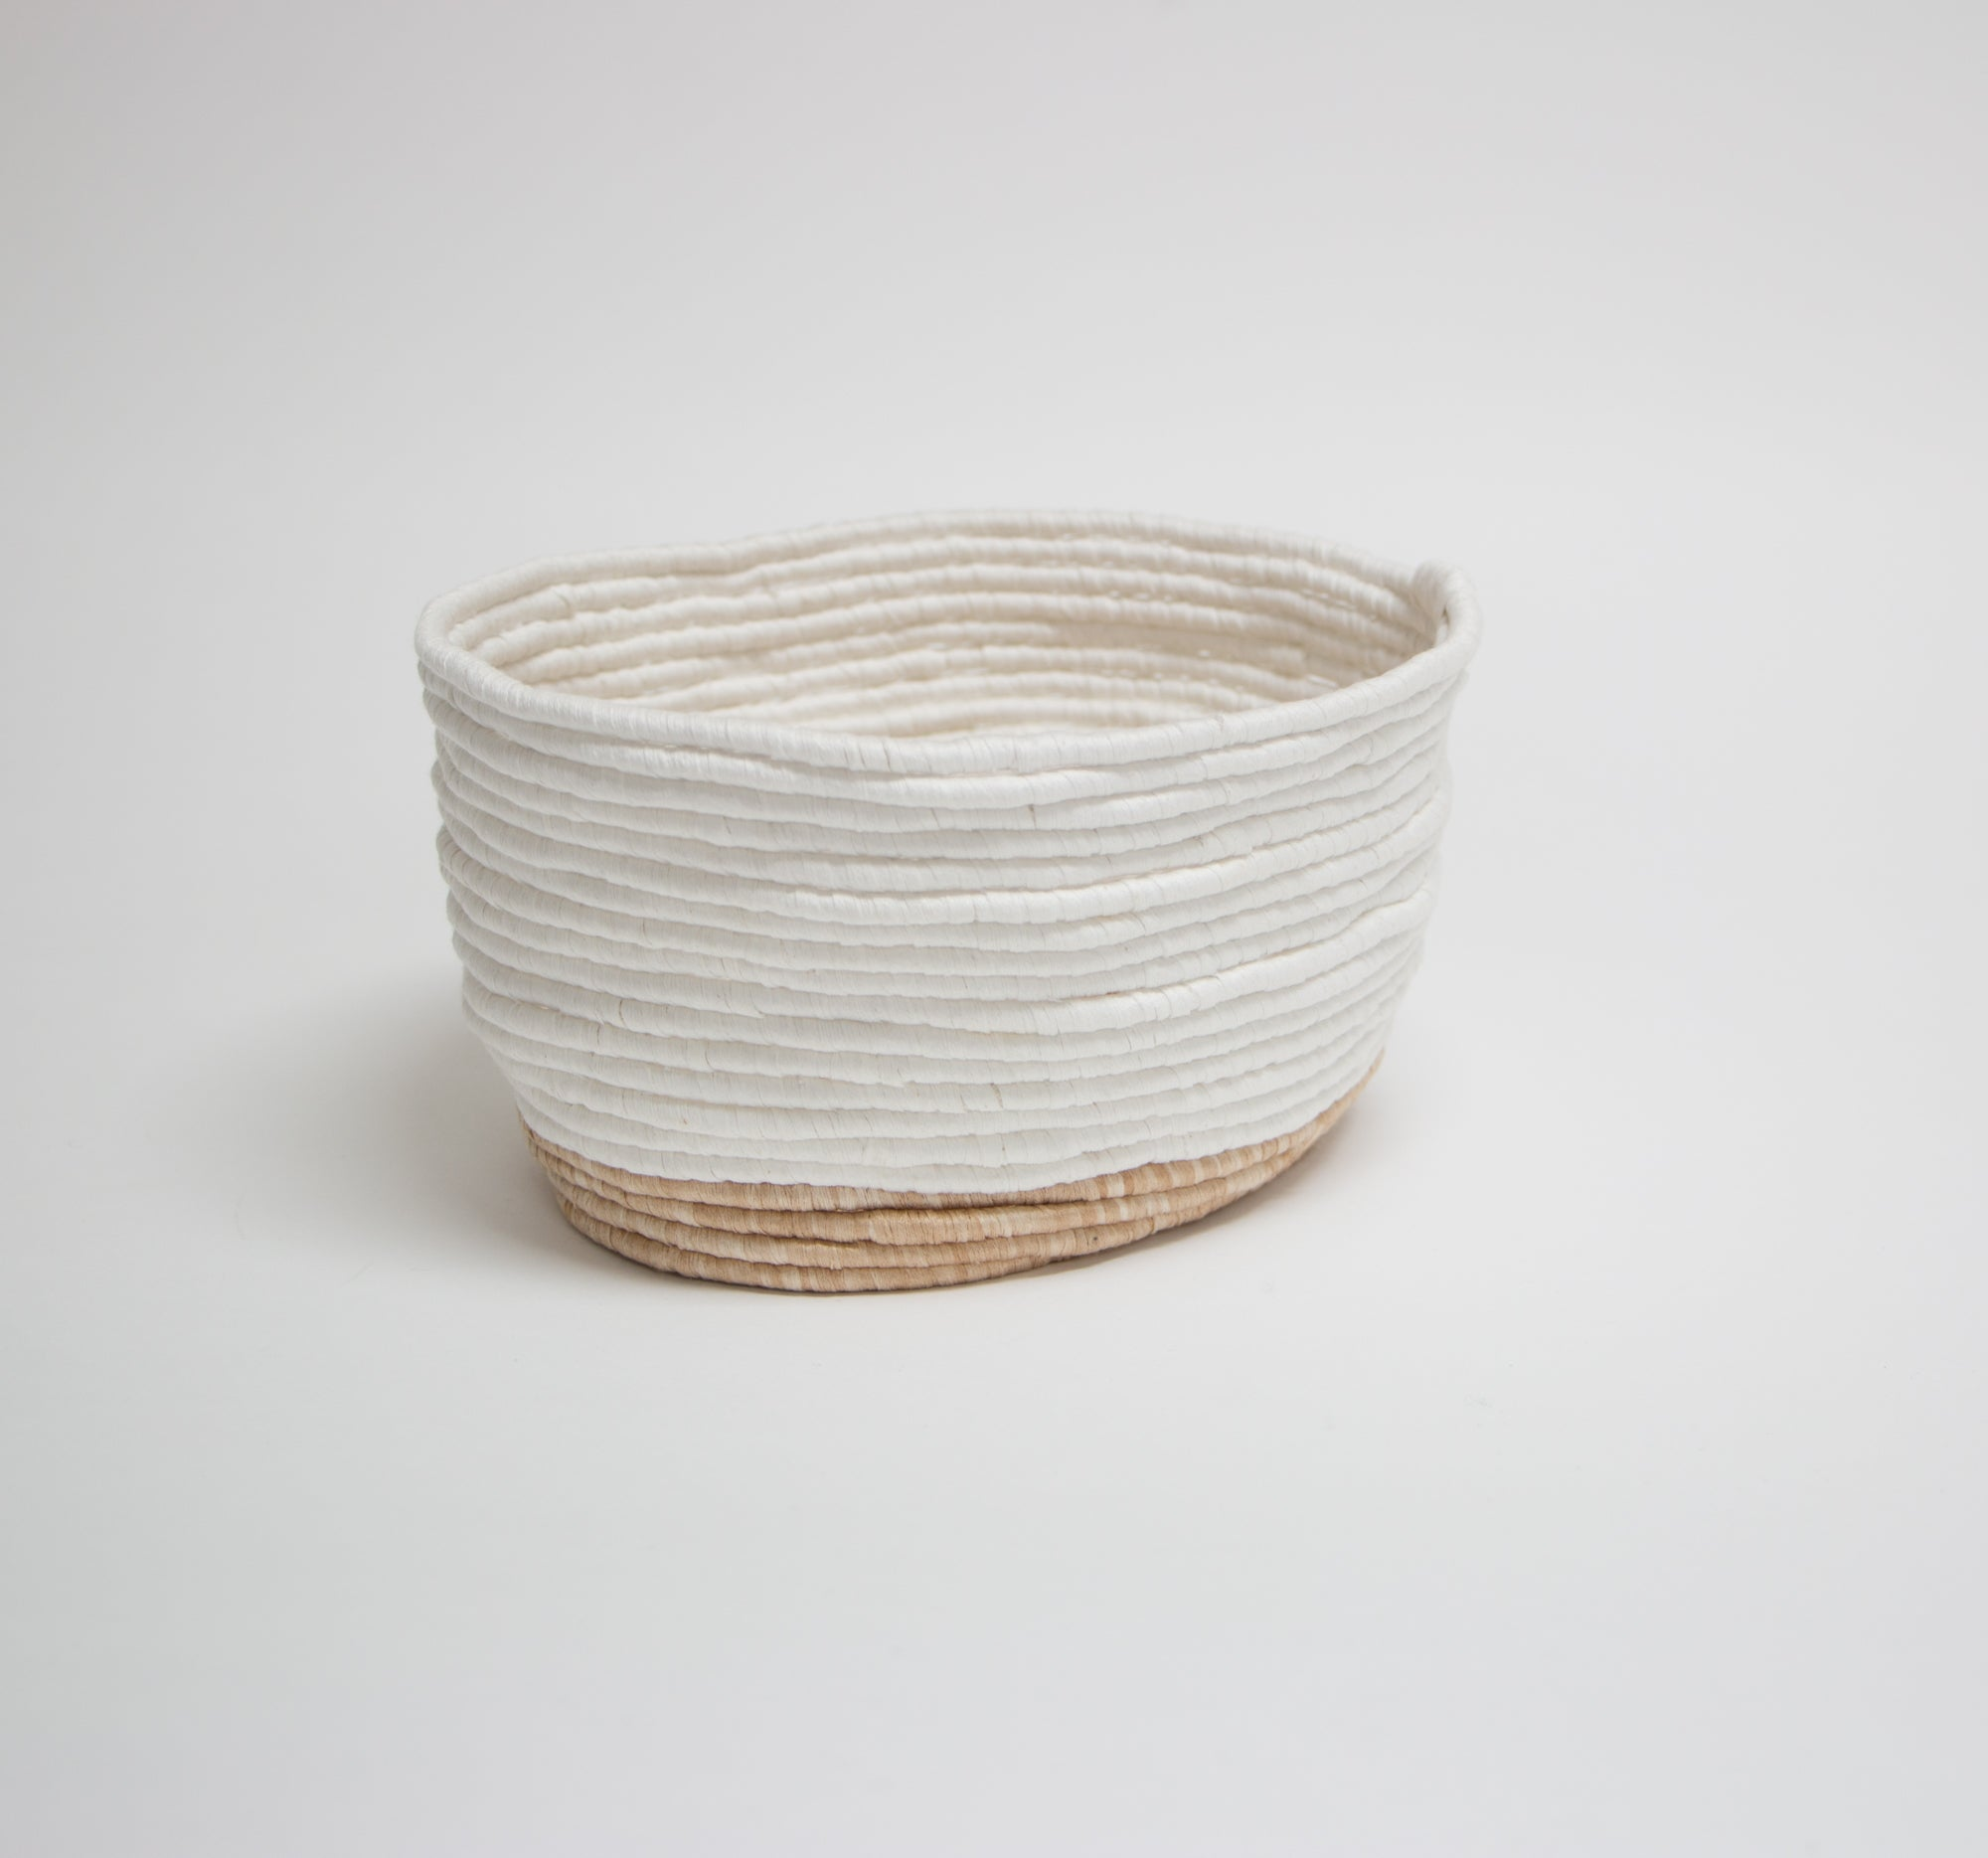 River Salt Basket